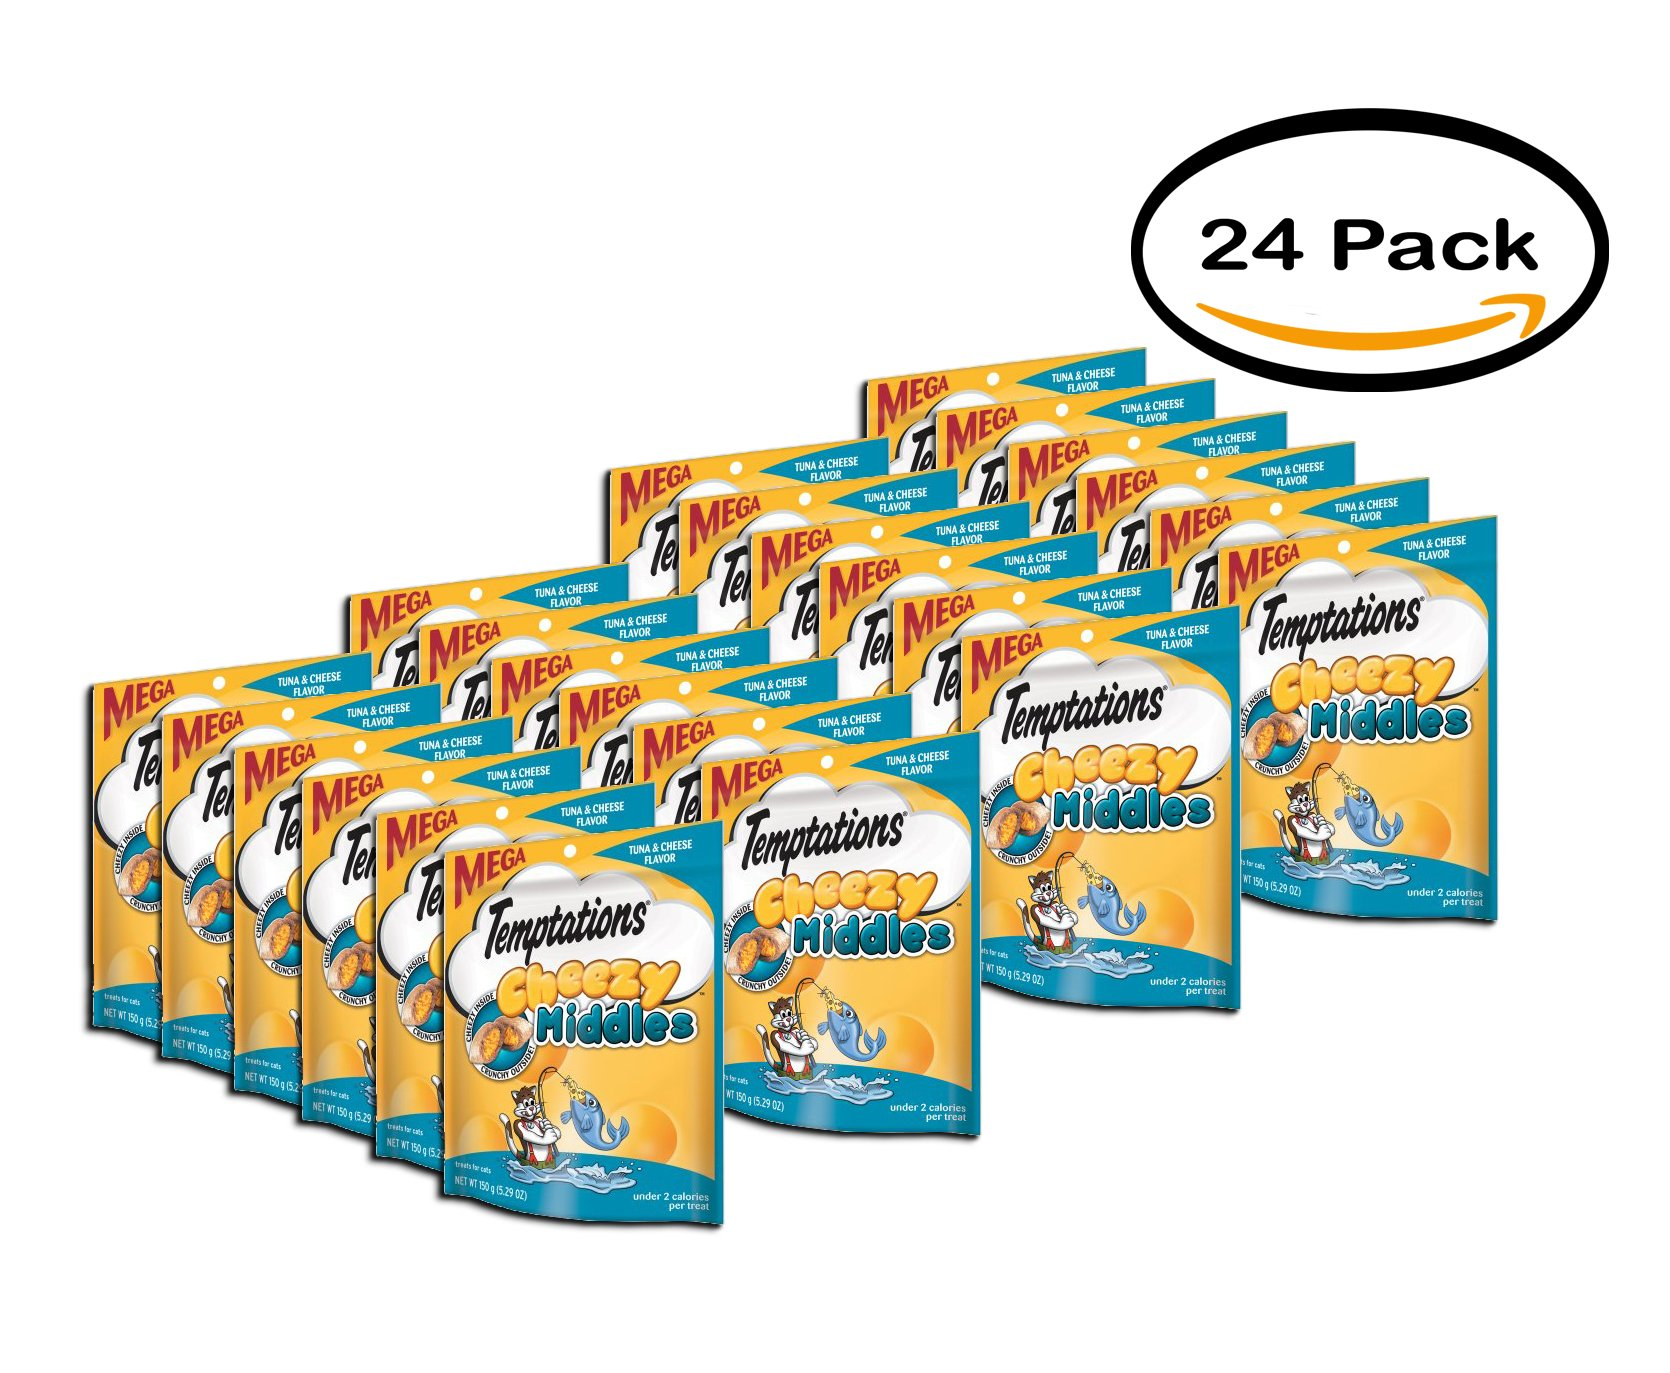 PACK OF 24 - TEMPTATIONS Cheezy Middles Treats for Cats Tuna and Cheese Flavor 5.29 Ounces